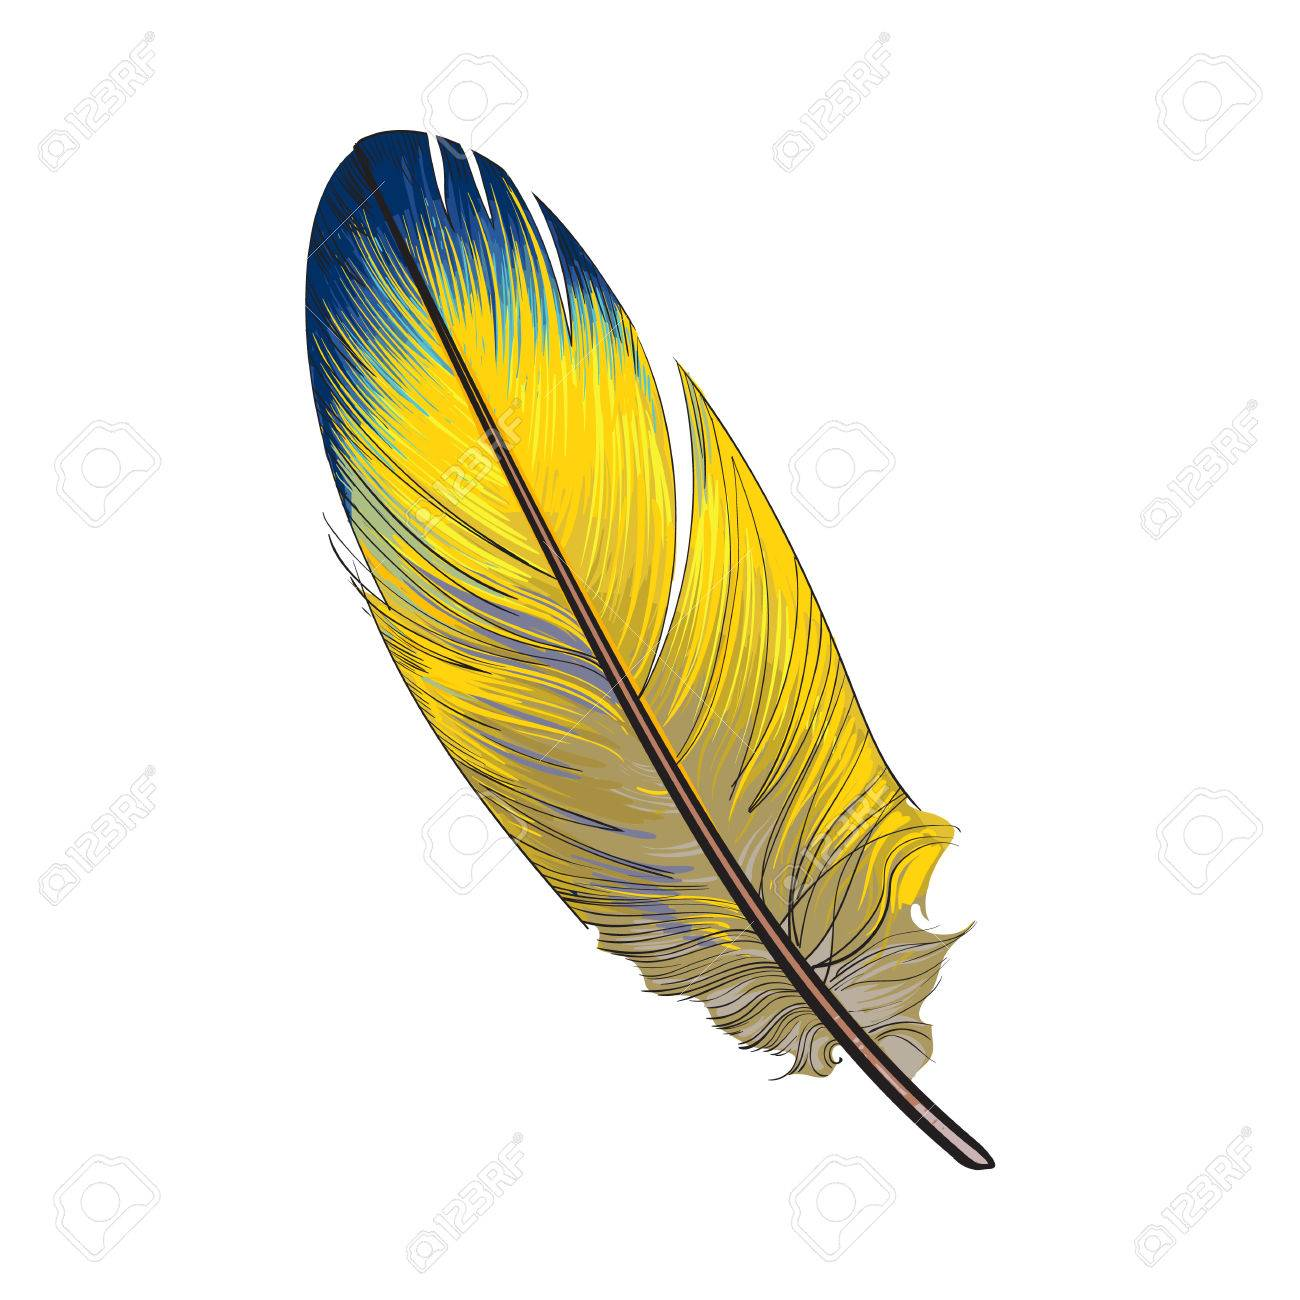 Smoth Dessine Main Tropical Jaune Et Bleu Plume D Oiseau Exotique